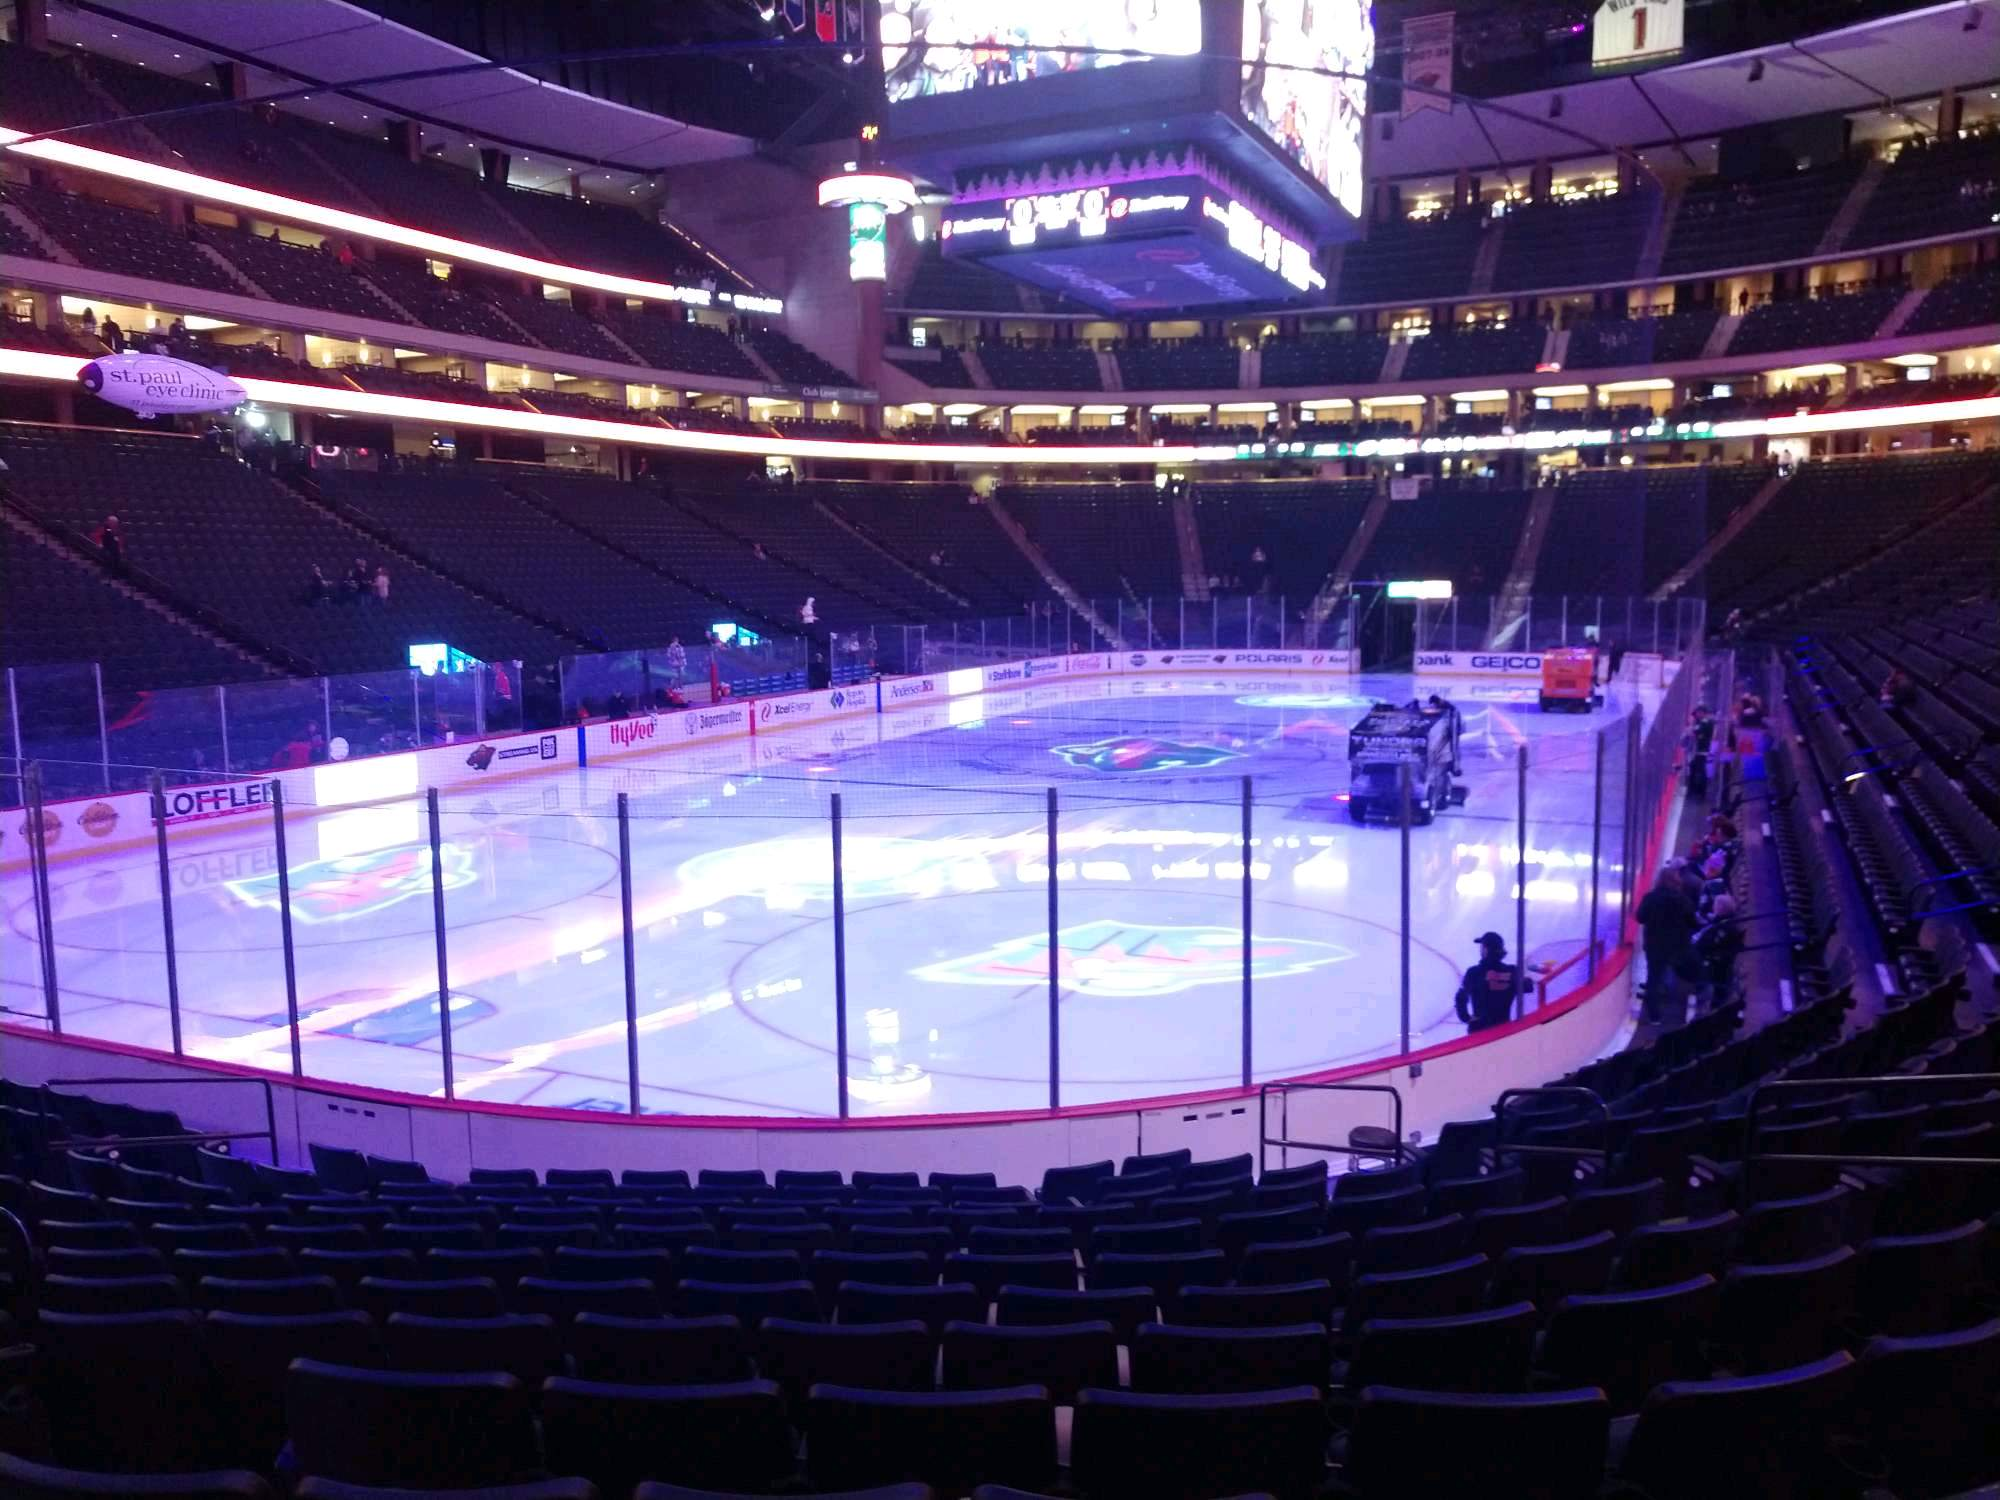 Xcel Energy Center Section 108 Row 13 Seat 10